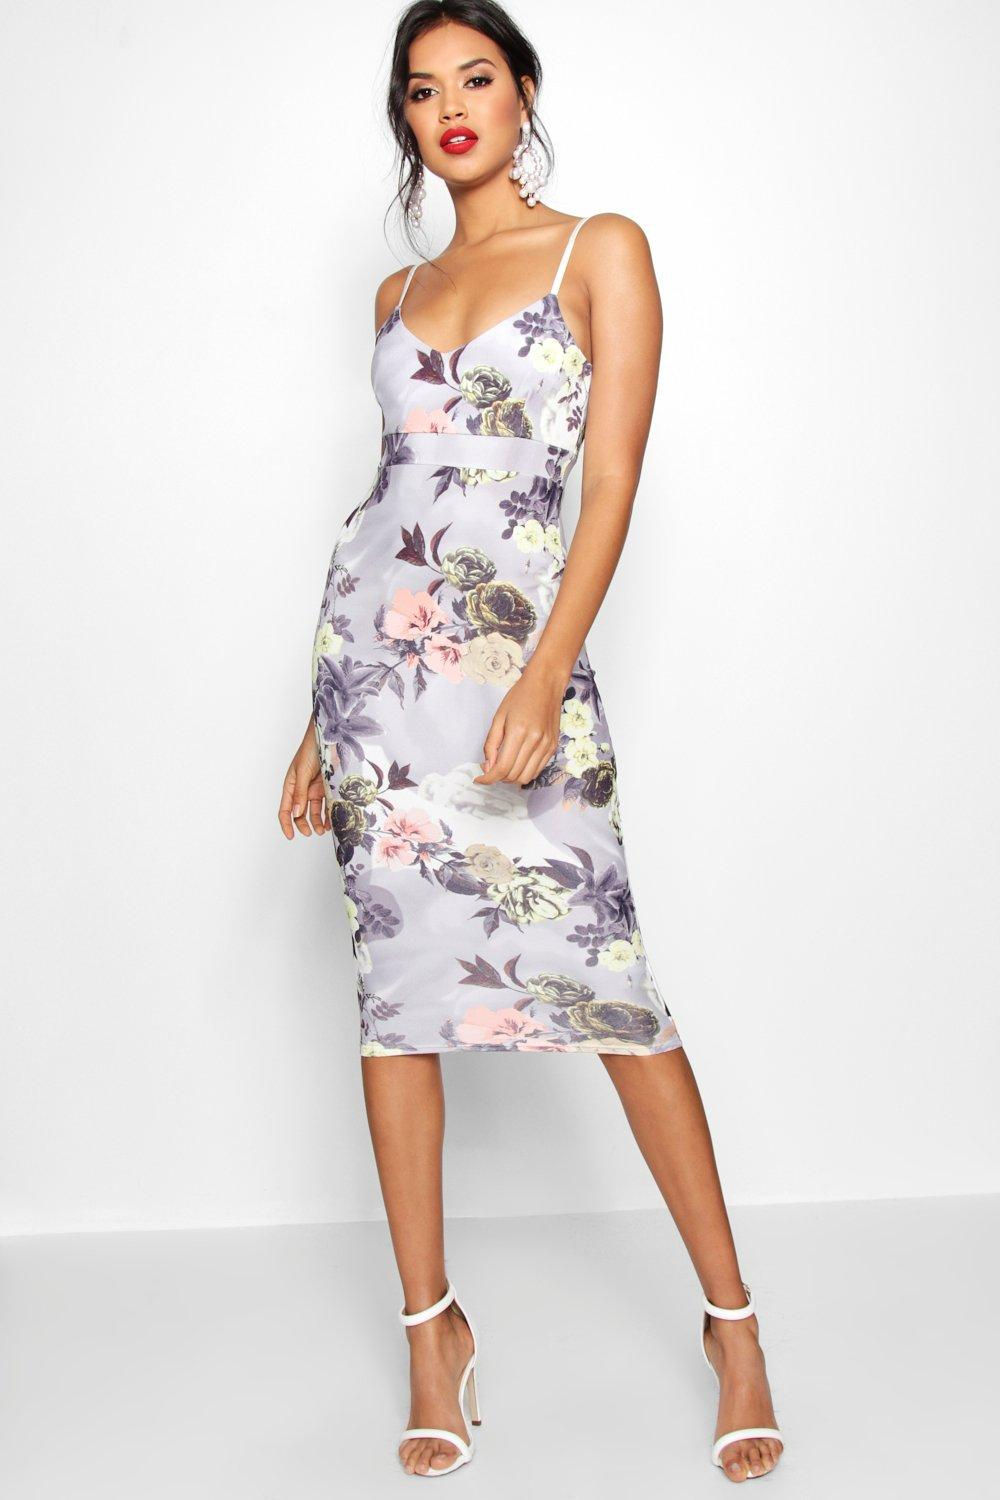 Midi Dresses Find your favorite midi dresses to create an on trend look this season. Shop our wrap, sheath, shift and fit & flare dresses to add some variety to your closet.